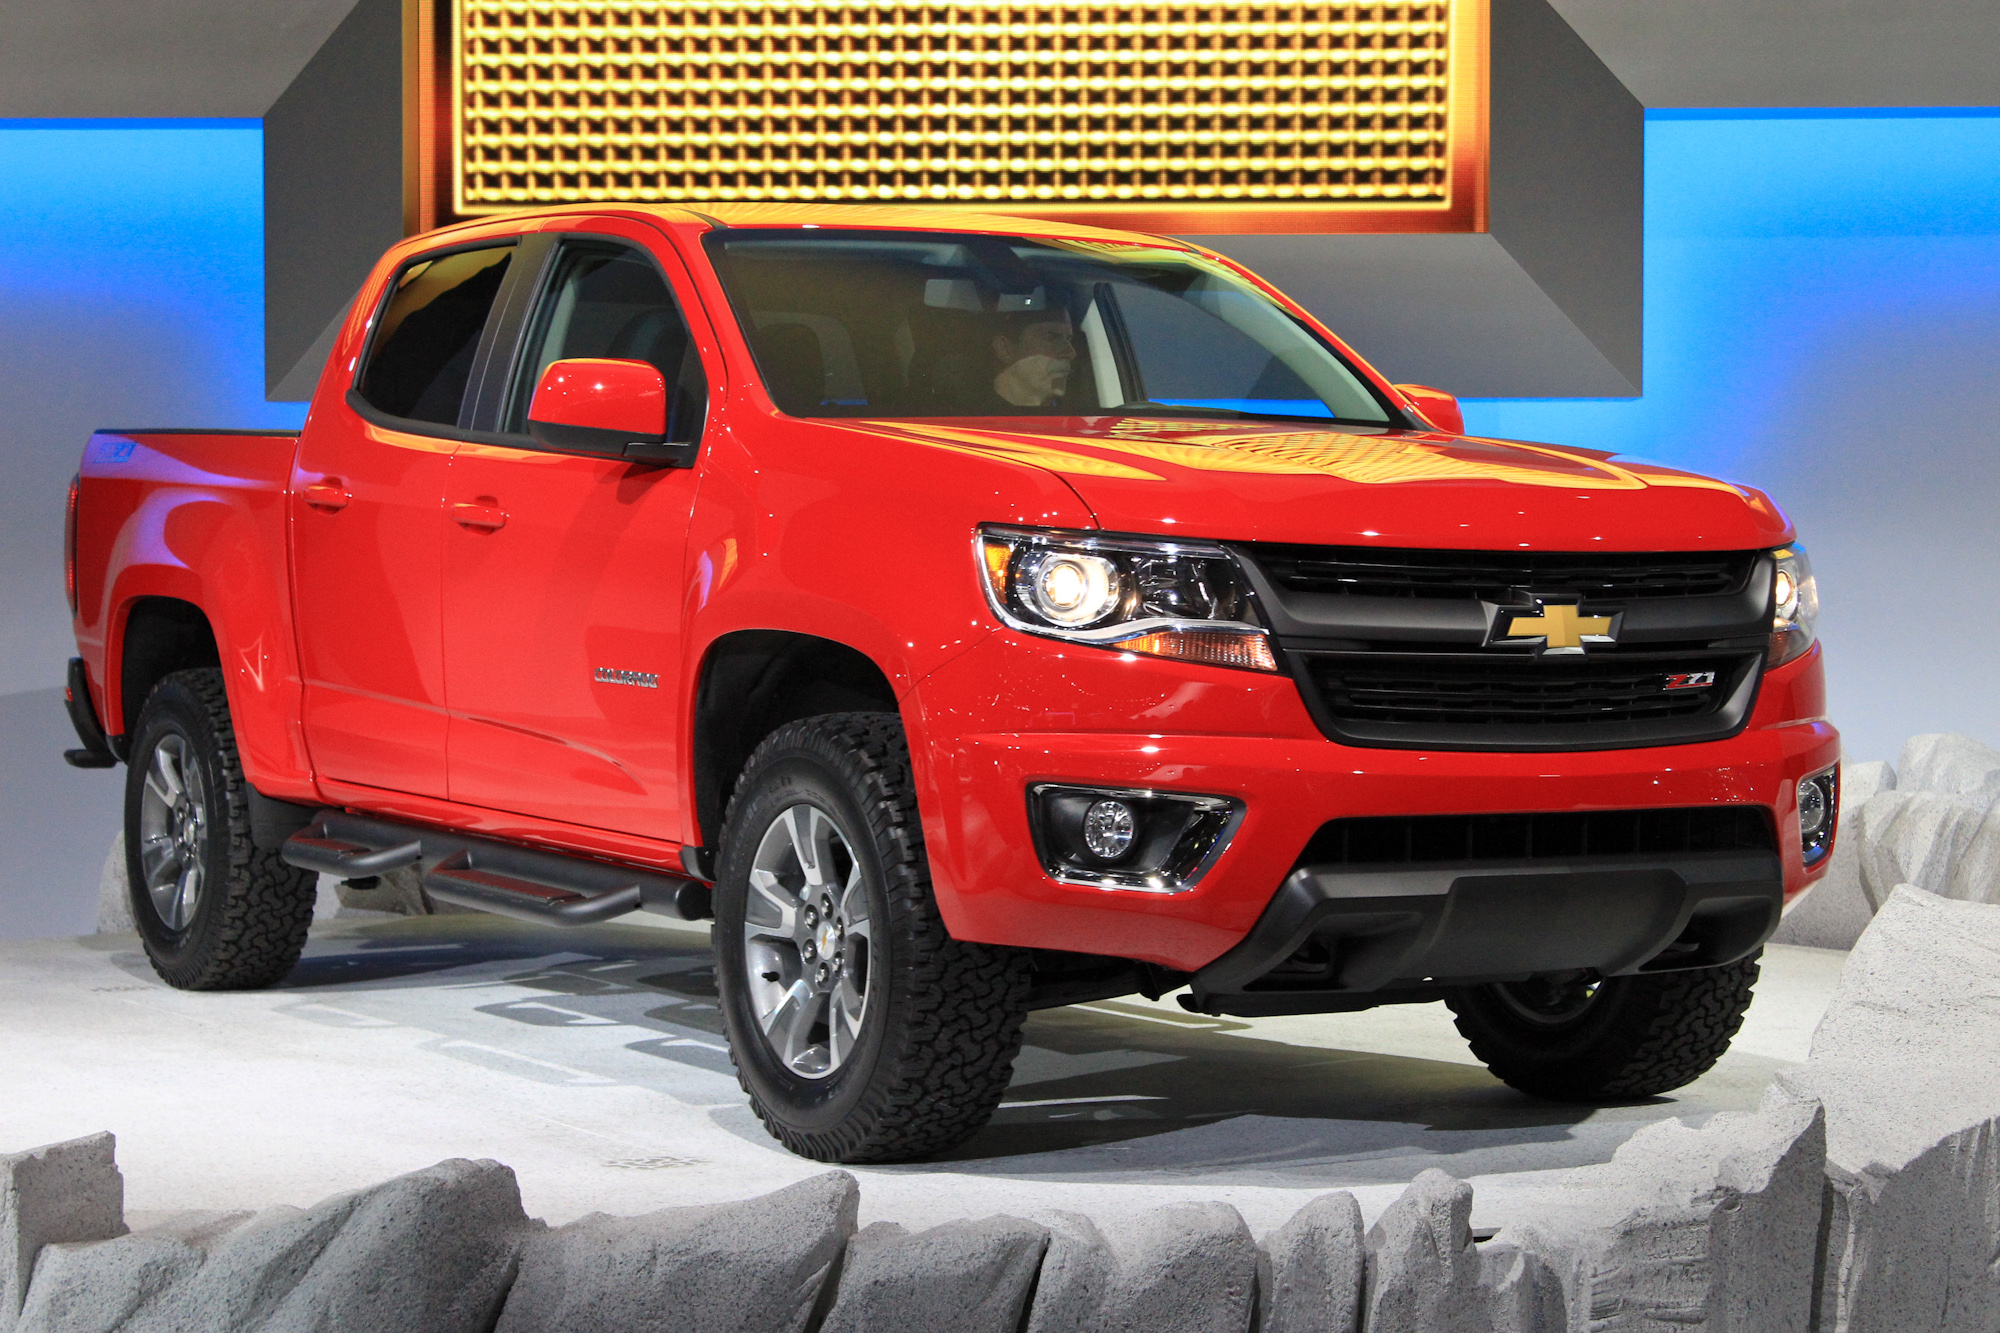 2015 chevy colorado gmc canyon gas mileage 20 or 21 mpg. Black Bedroom Furniture Sets. Home Design Ideas